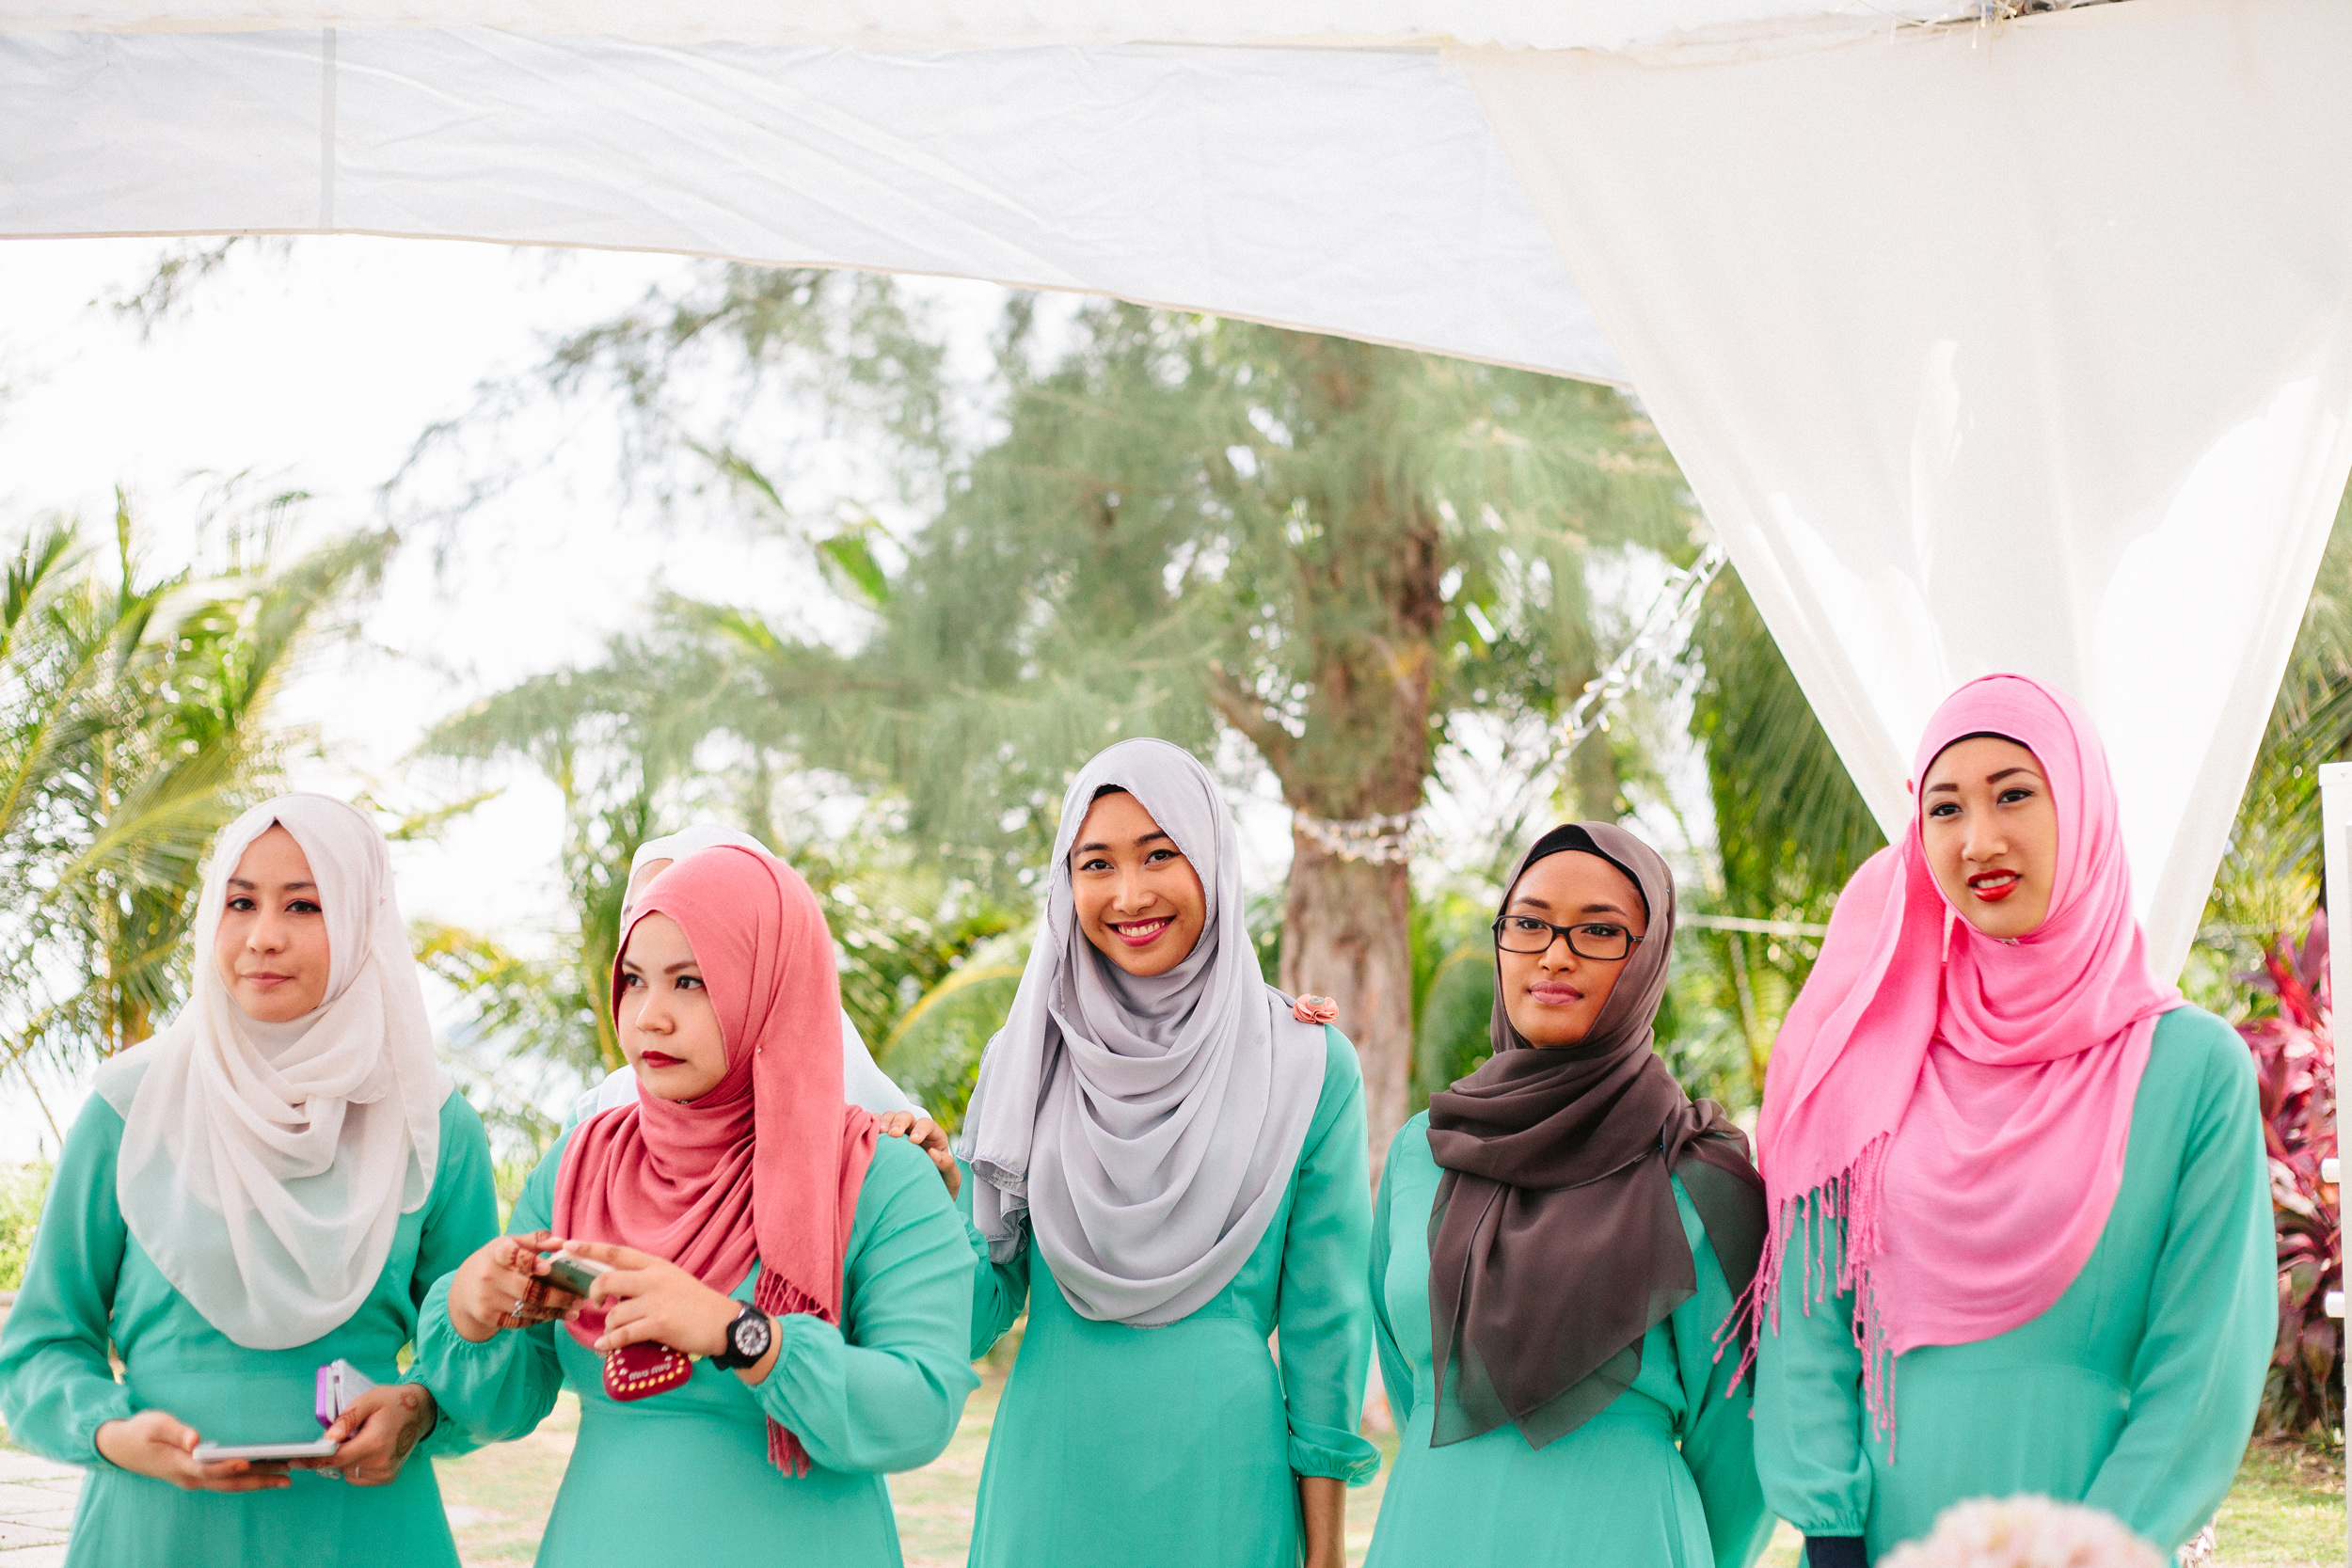 singapore-wedding-photographer-wemadethese-aisyah-helmi-14.jpg